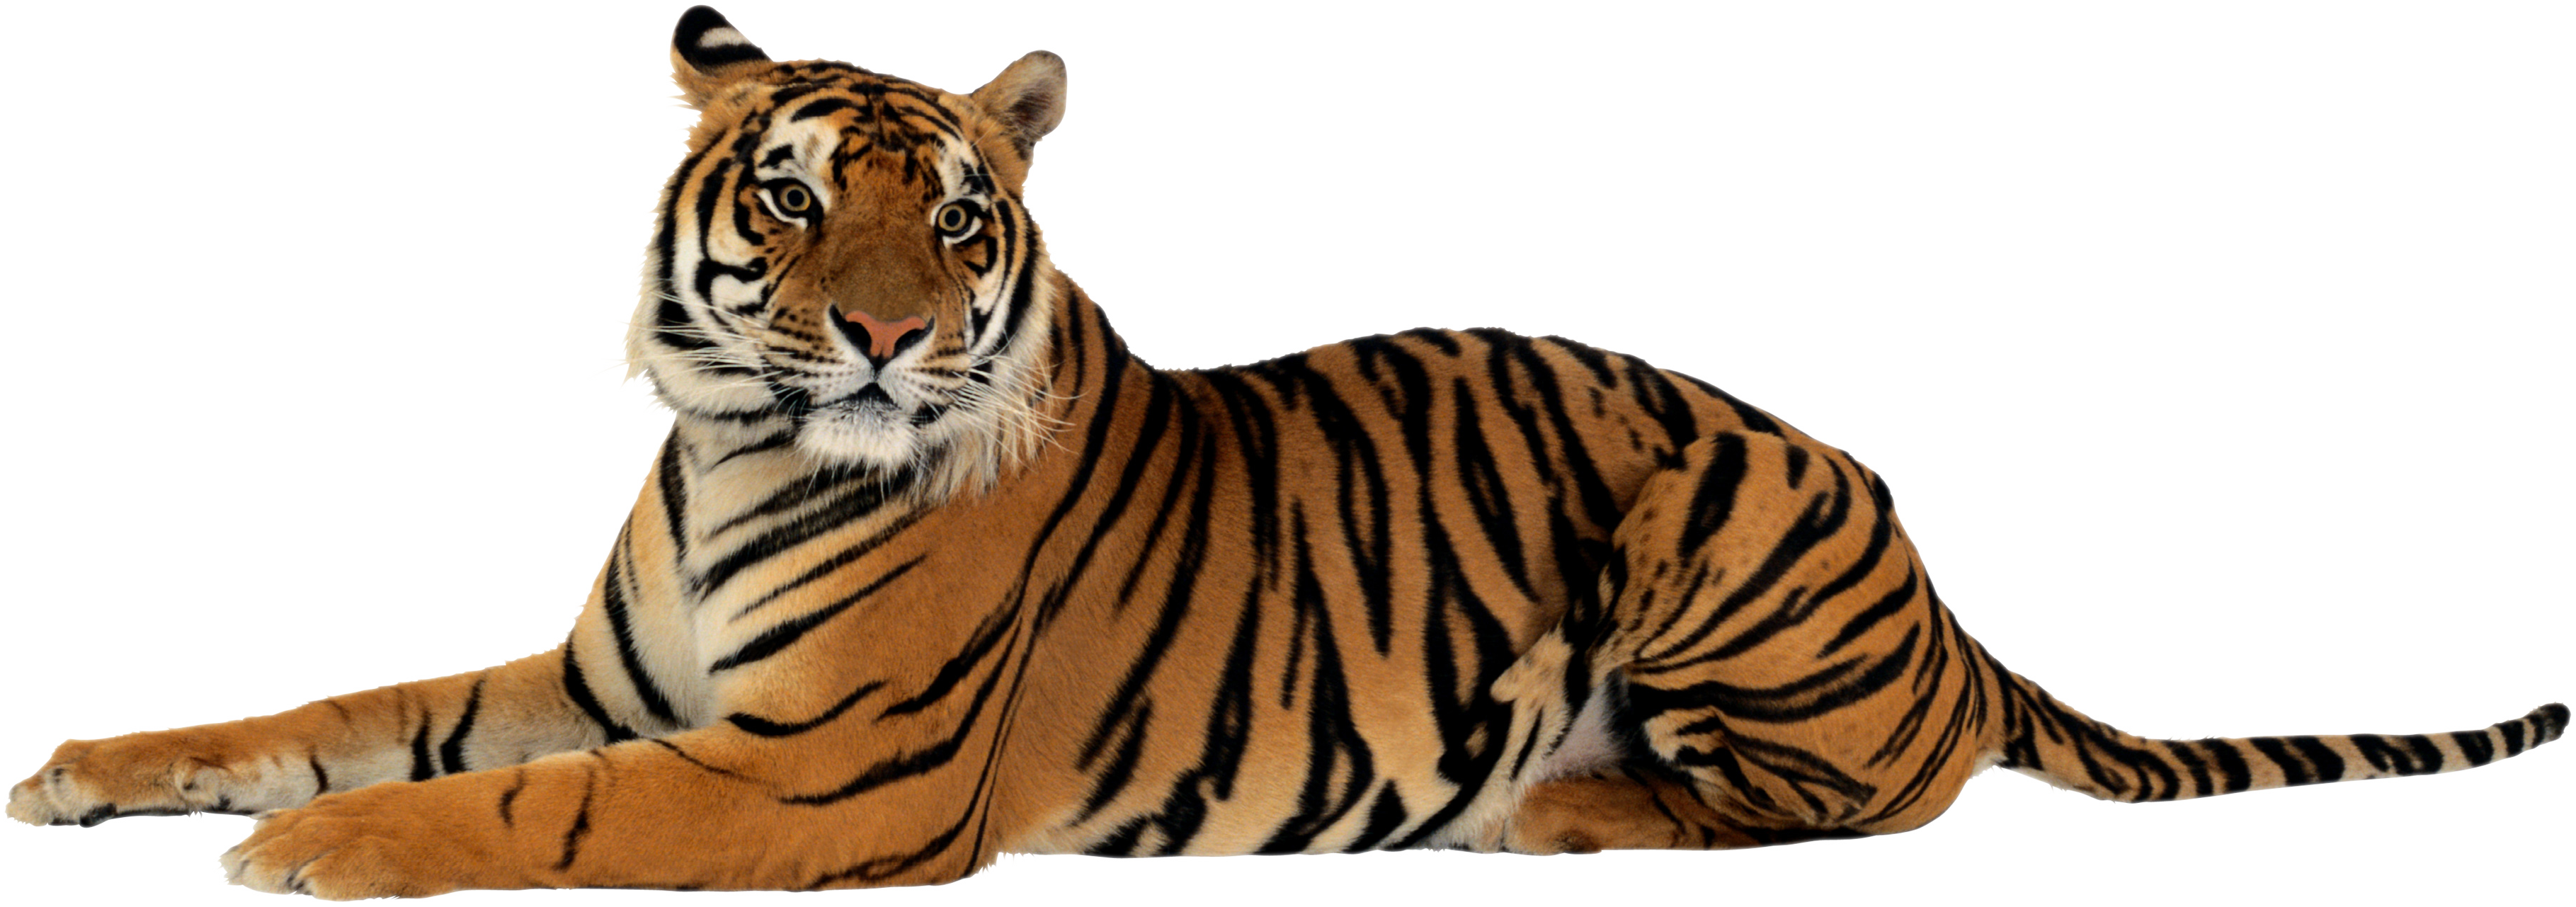 Browse And Download Tiger Png Pictures image #39205